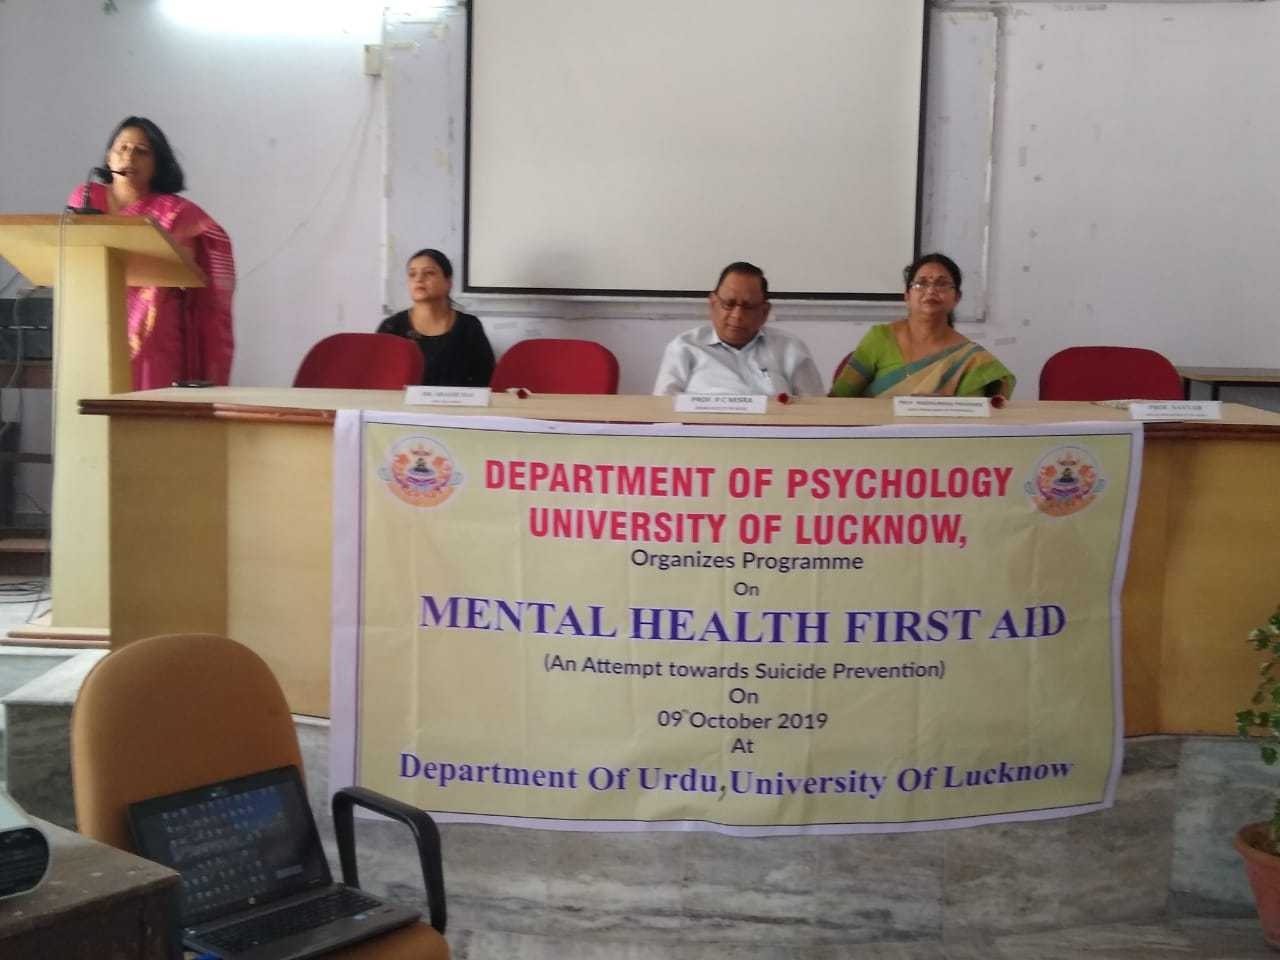 Dr-Shashi-Rai-Gave-a-Talk-on-Suicide-Prevention-at-the-function-organised-by-Lucknow-University-on-World-Mental-Health-Day